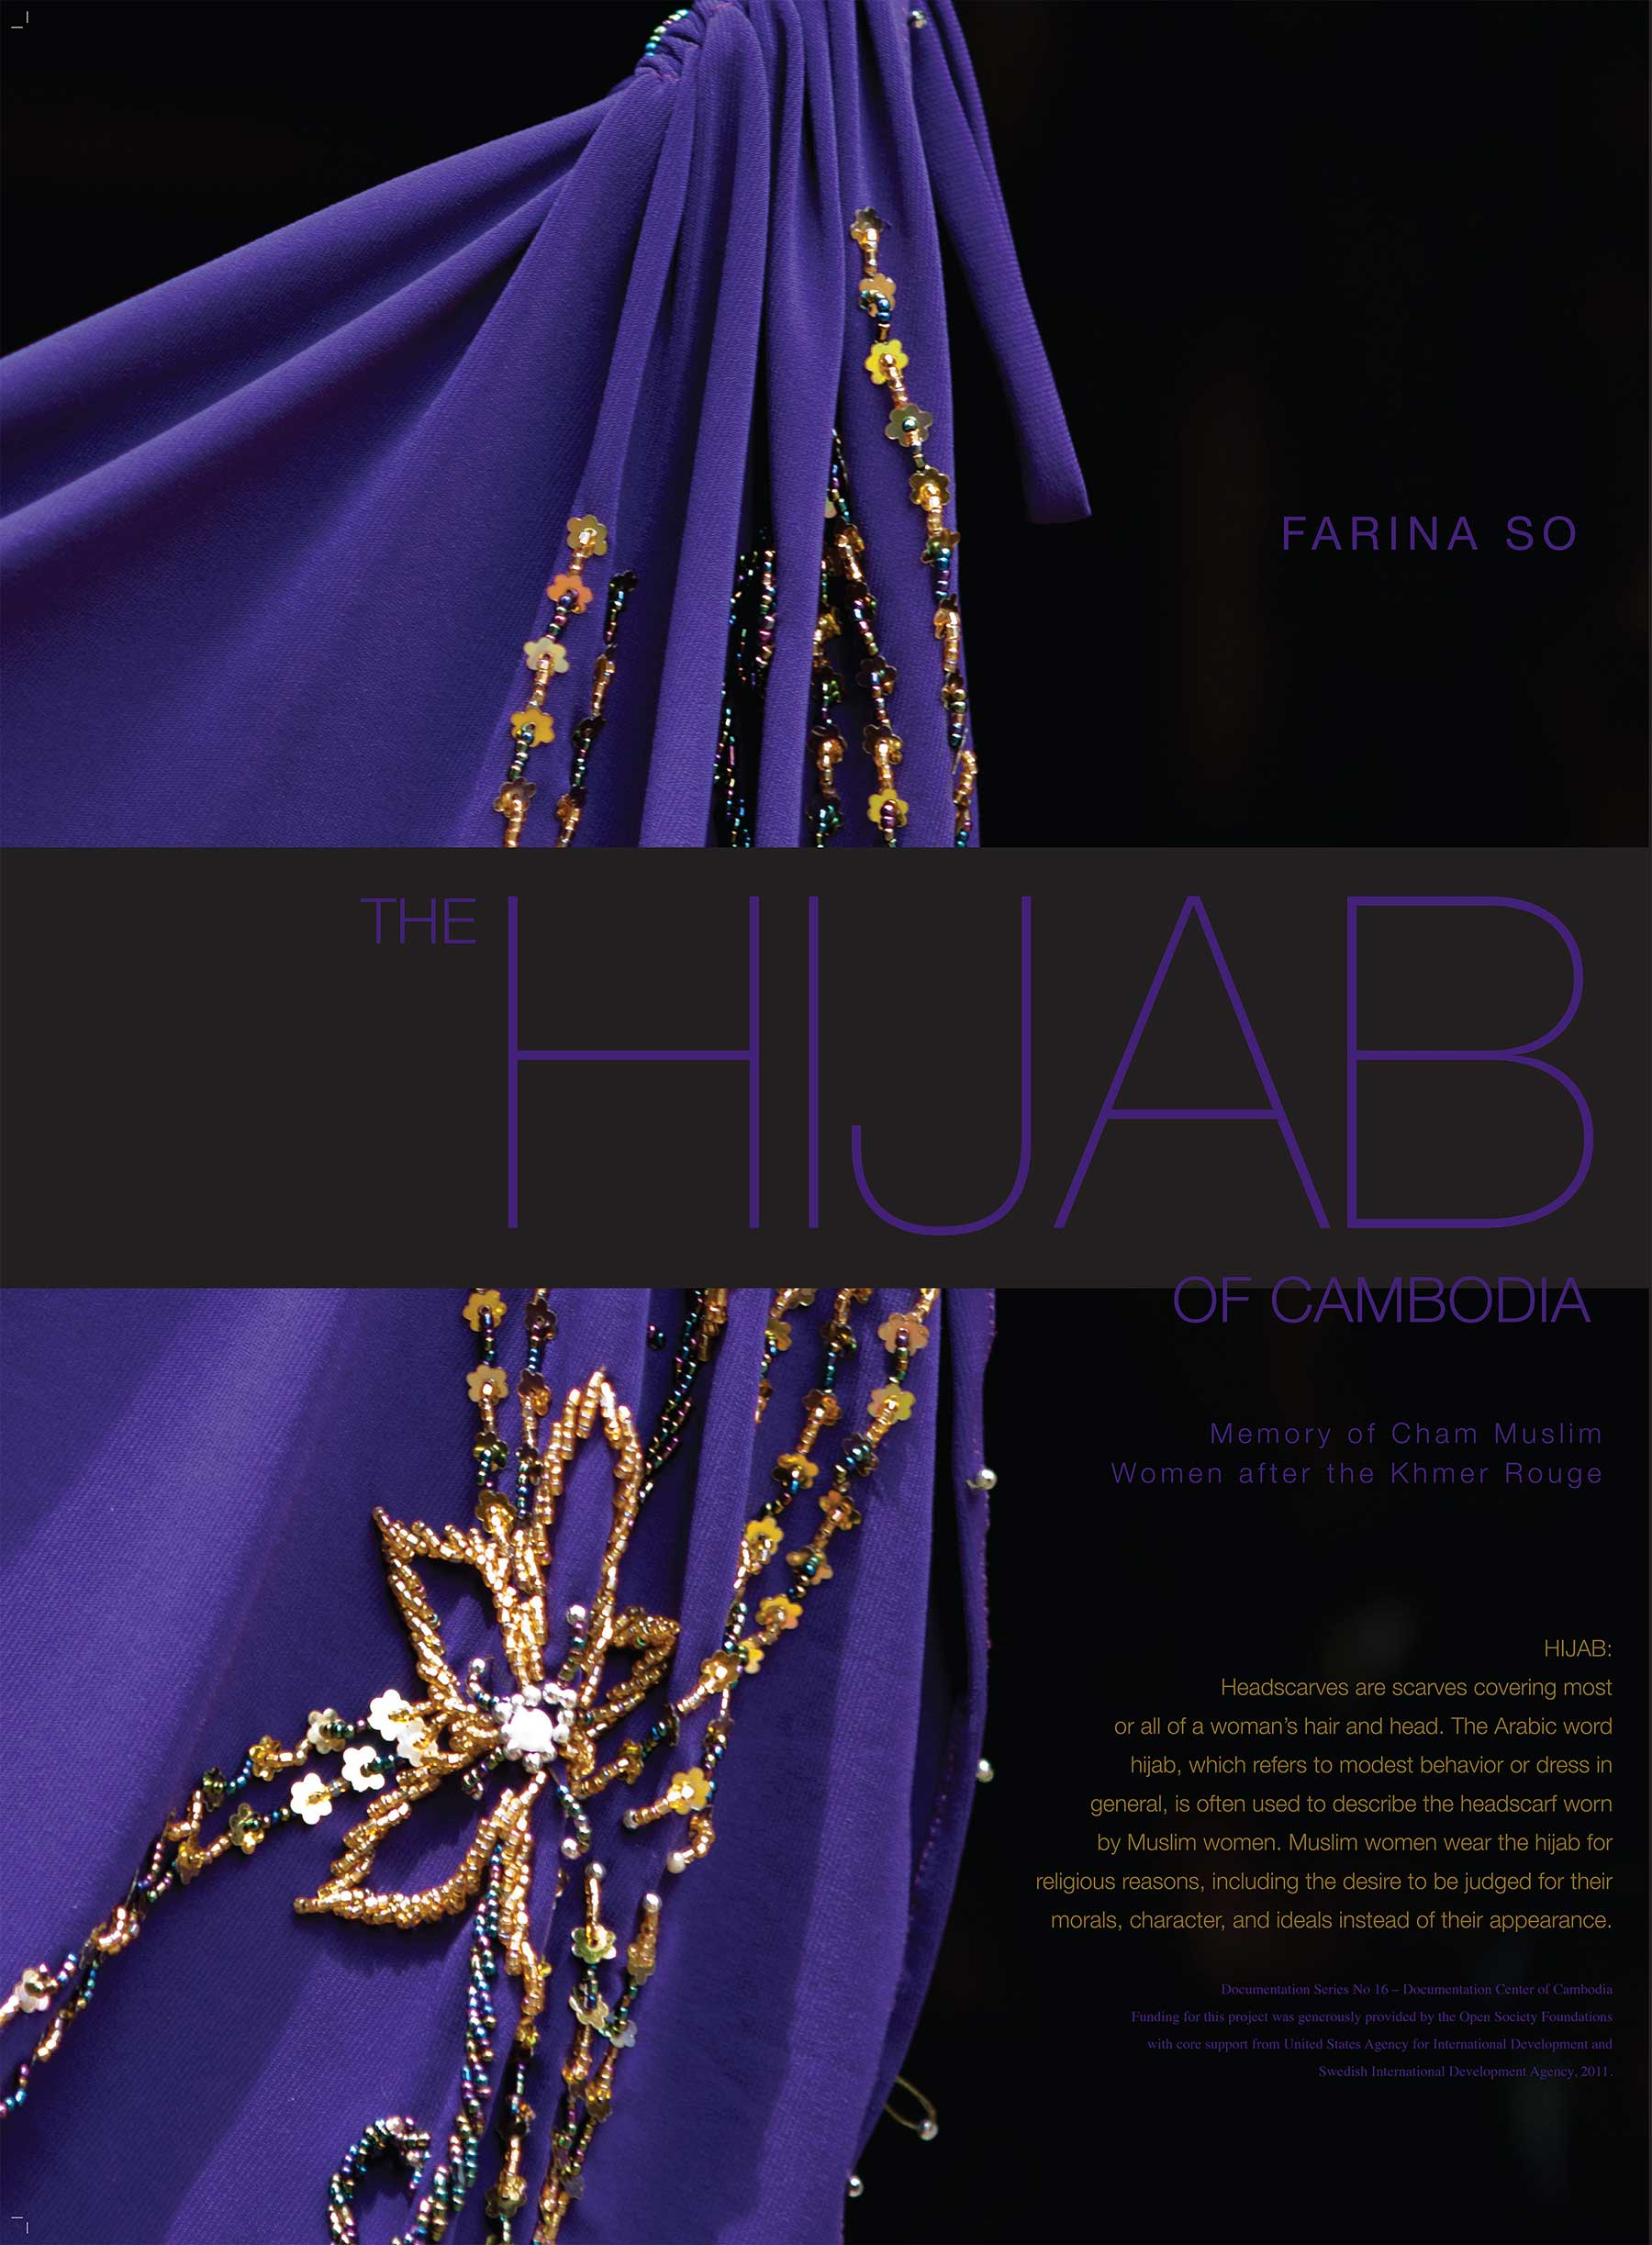 THE HIJAB OF CAMBODIA (2011)